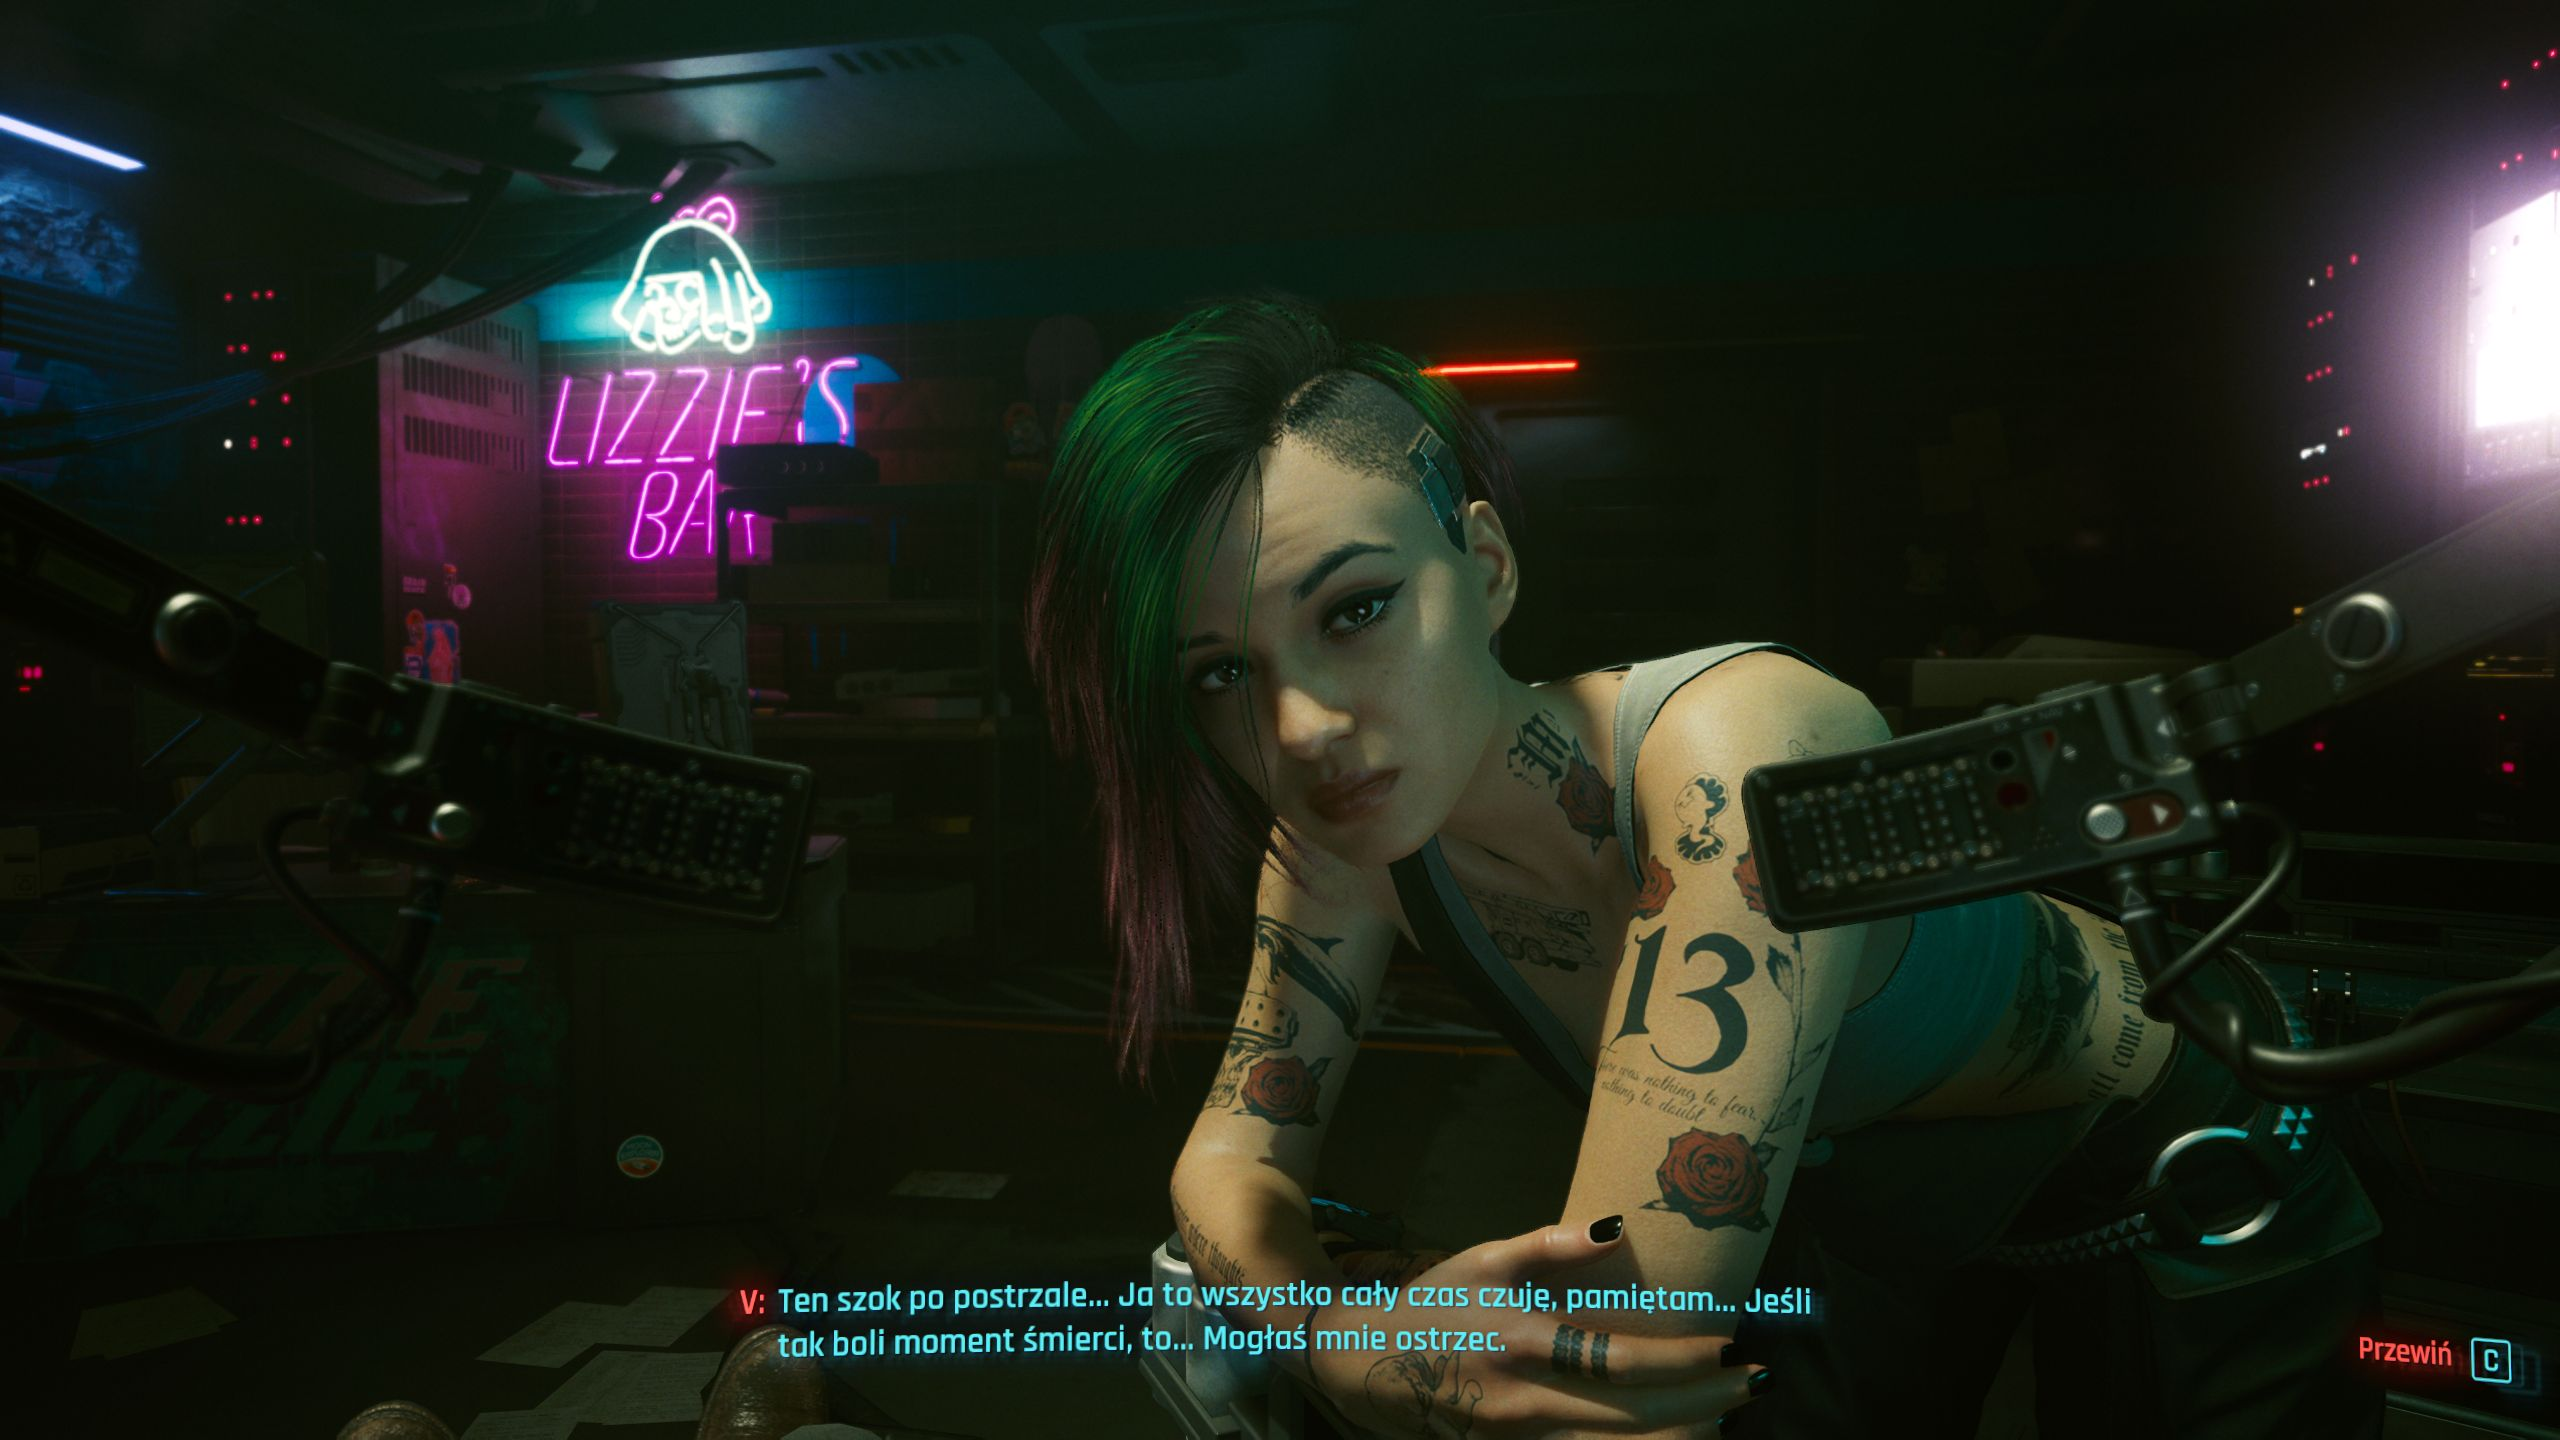 Cyberpunk_2077_C_2020_by_CD_Projekt_RED_13.12.2020_01_48_25_P